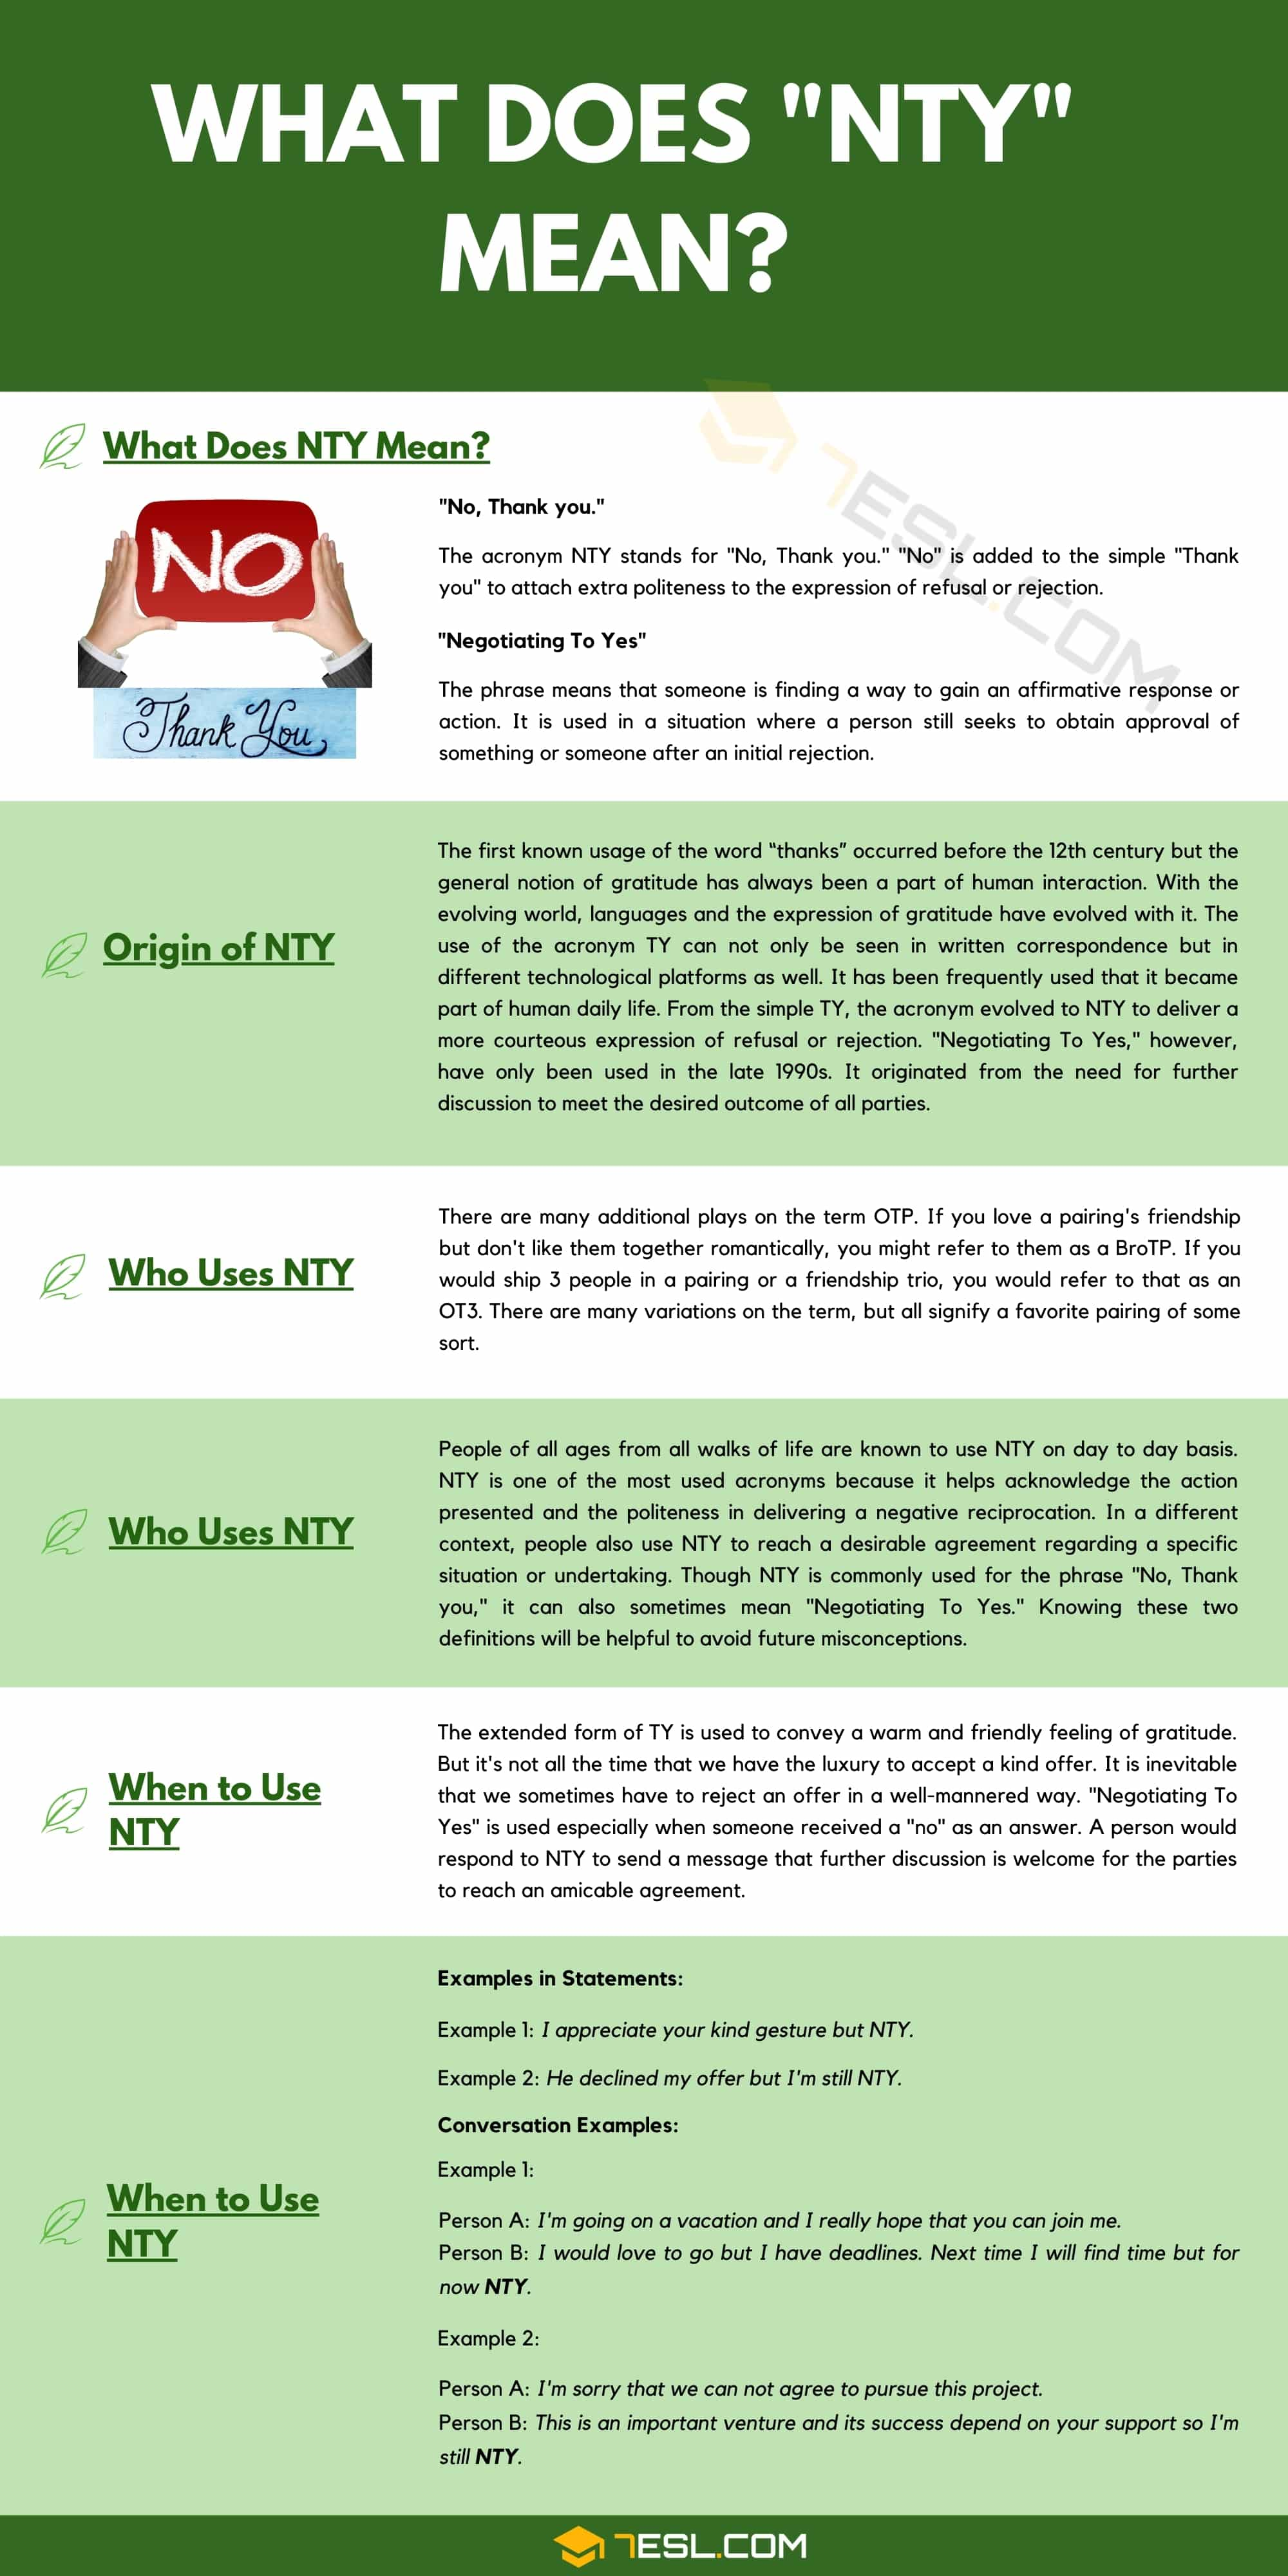 NTY Meaning